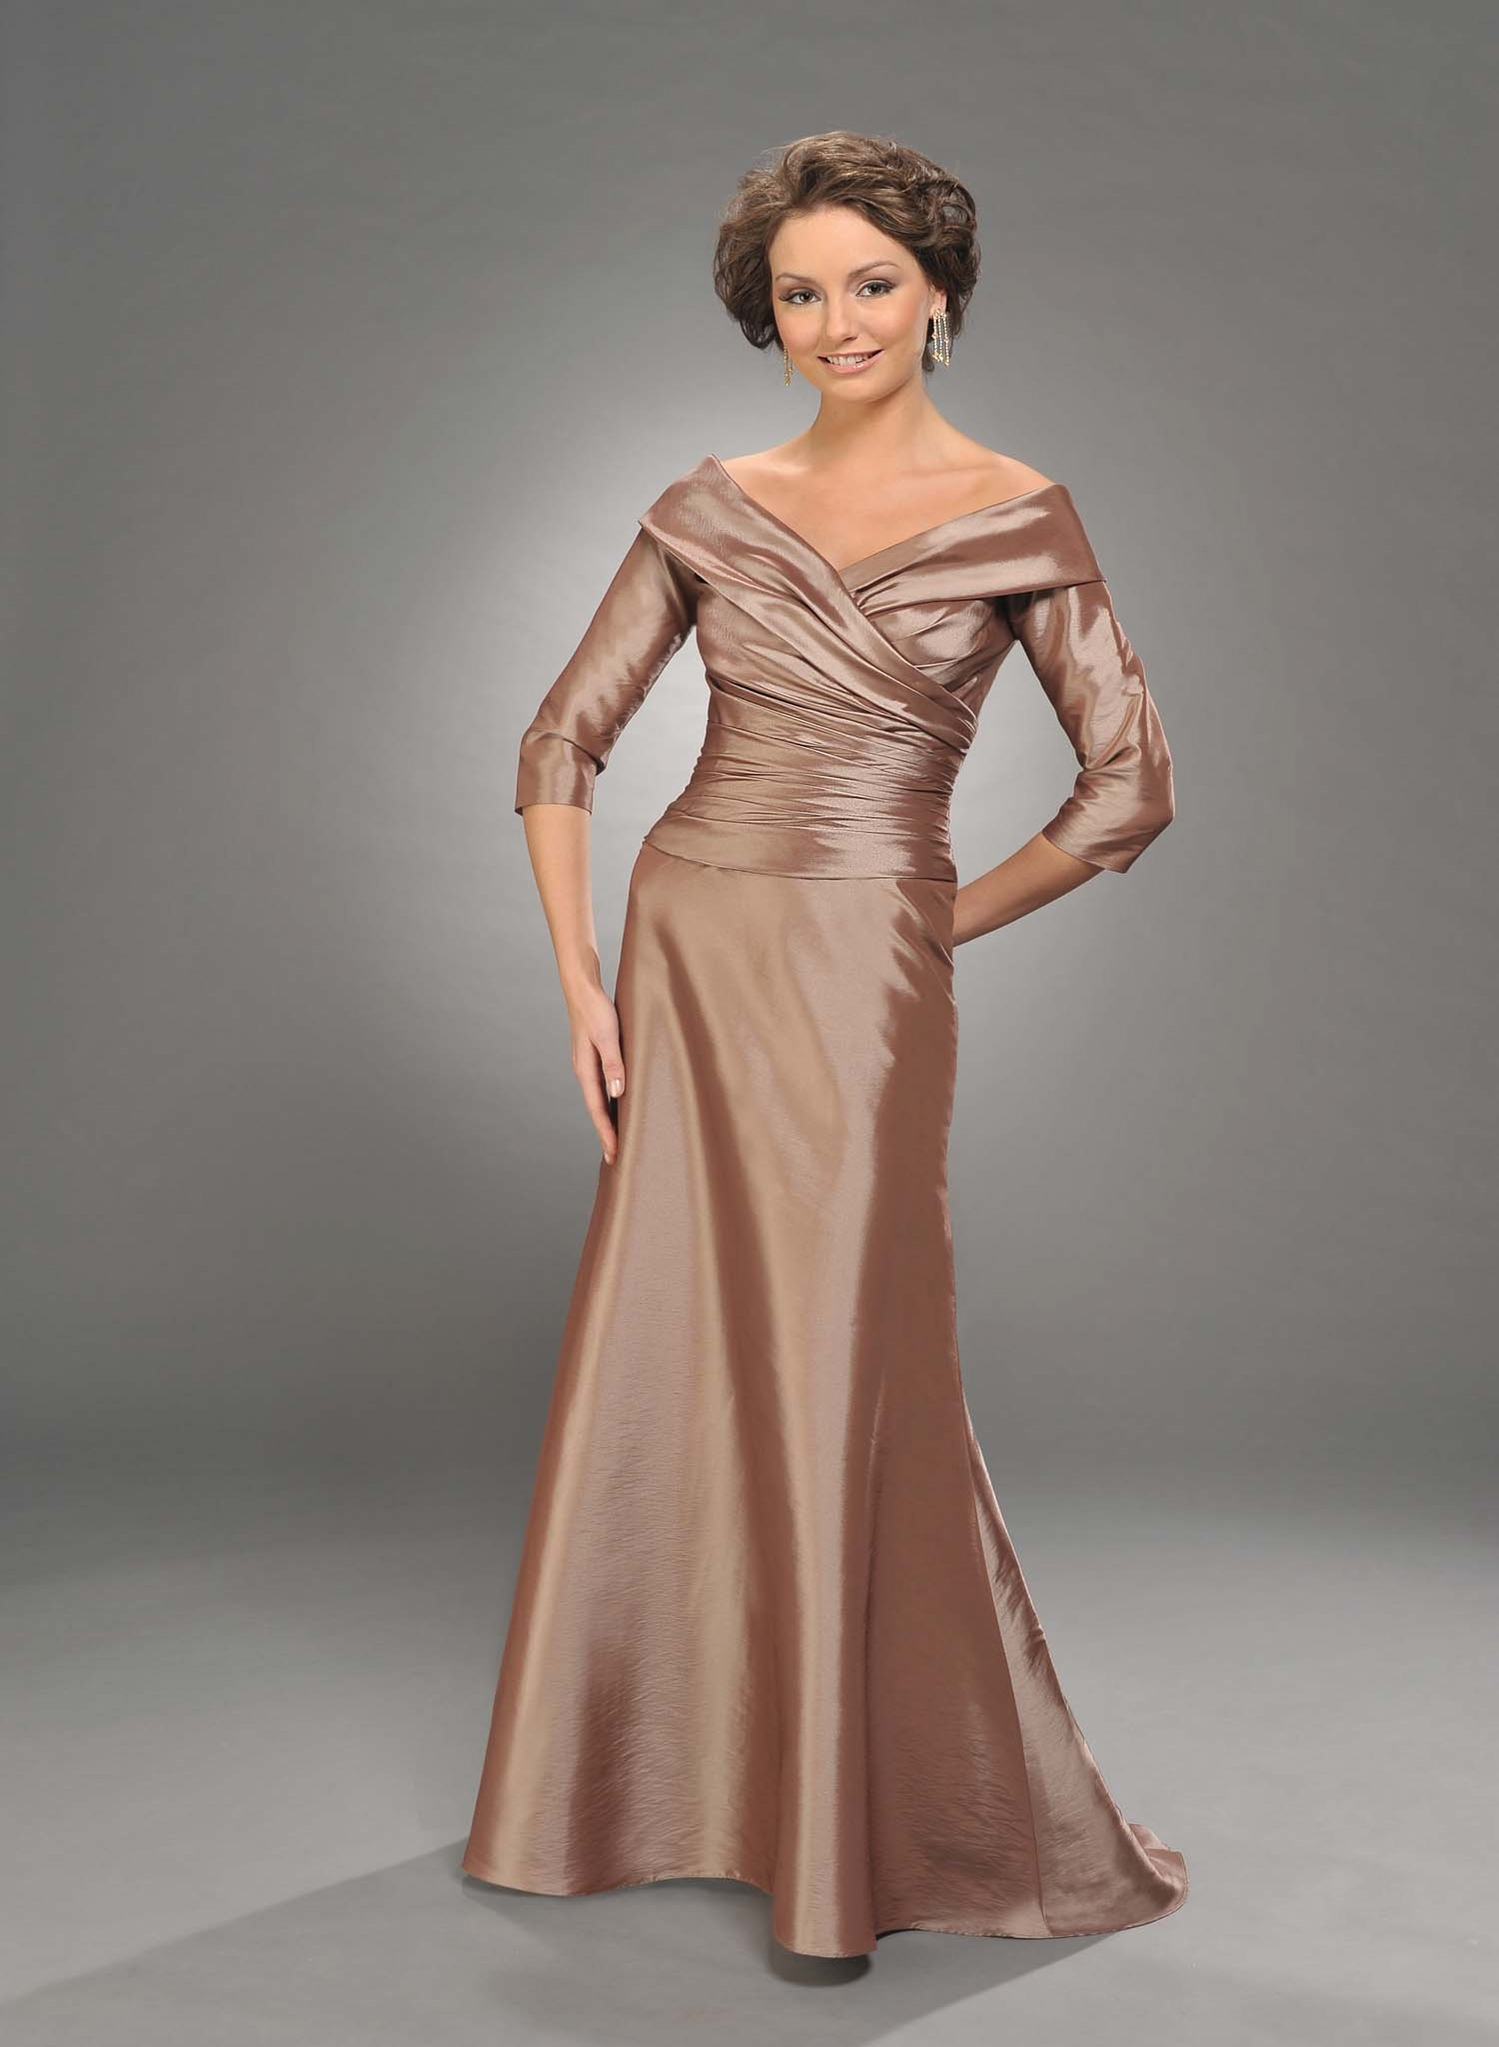 Champagne A Line V Neck Half Sleeves Full Length Mother Of Bride Dresses With Drapes